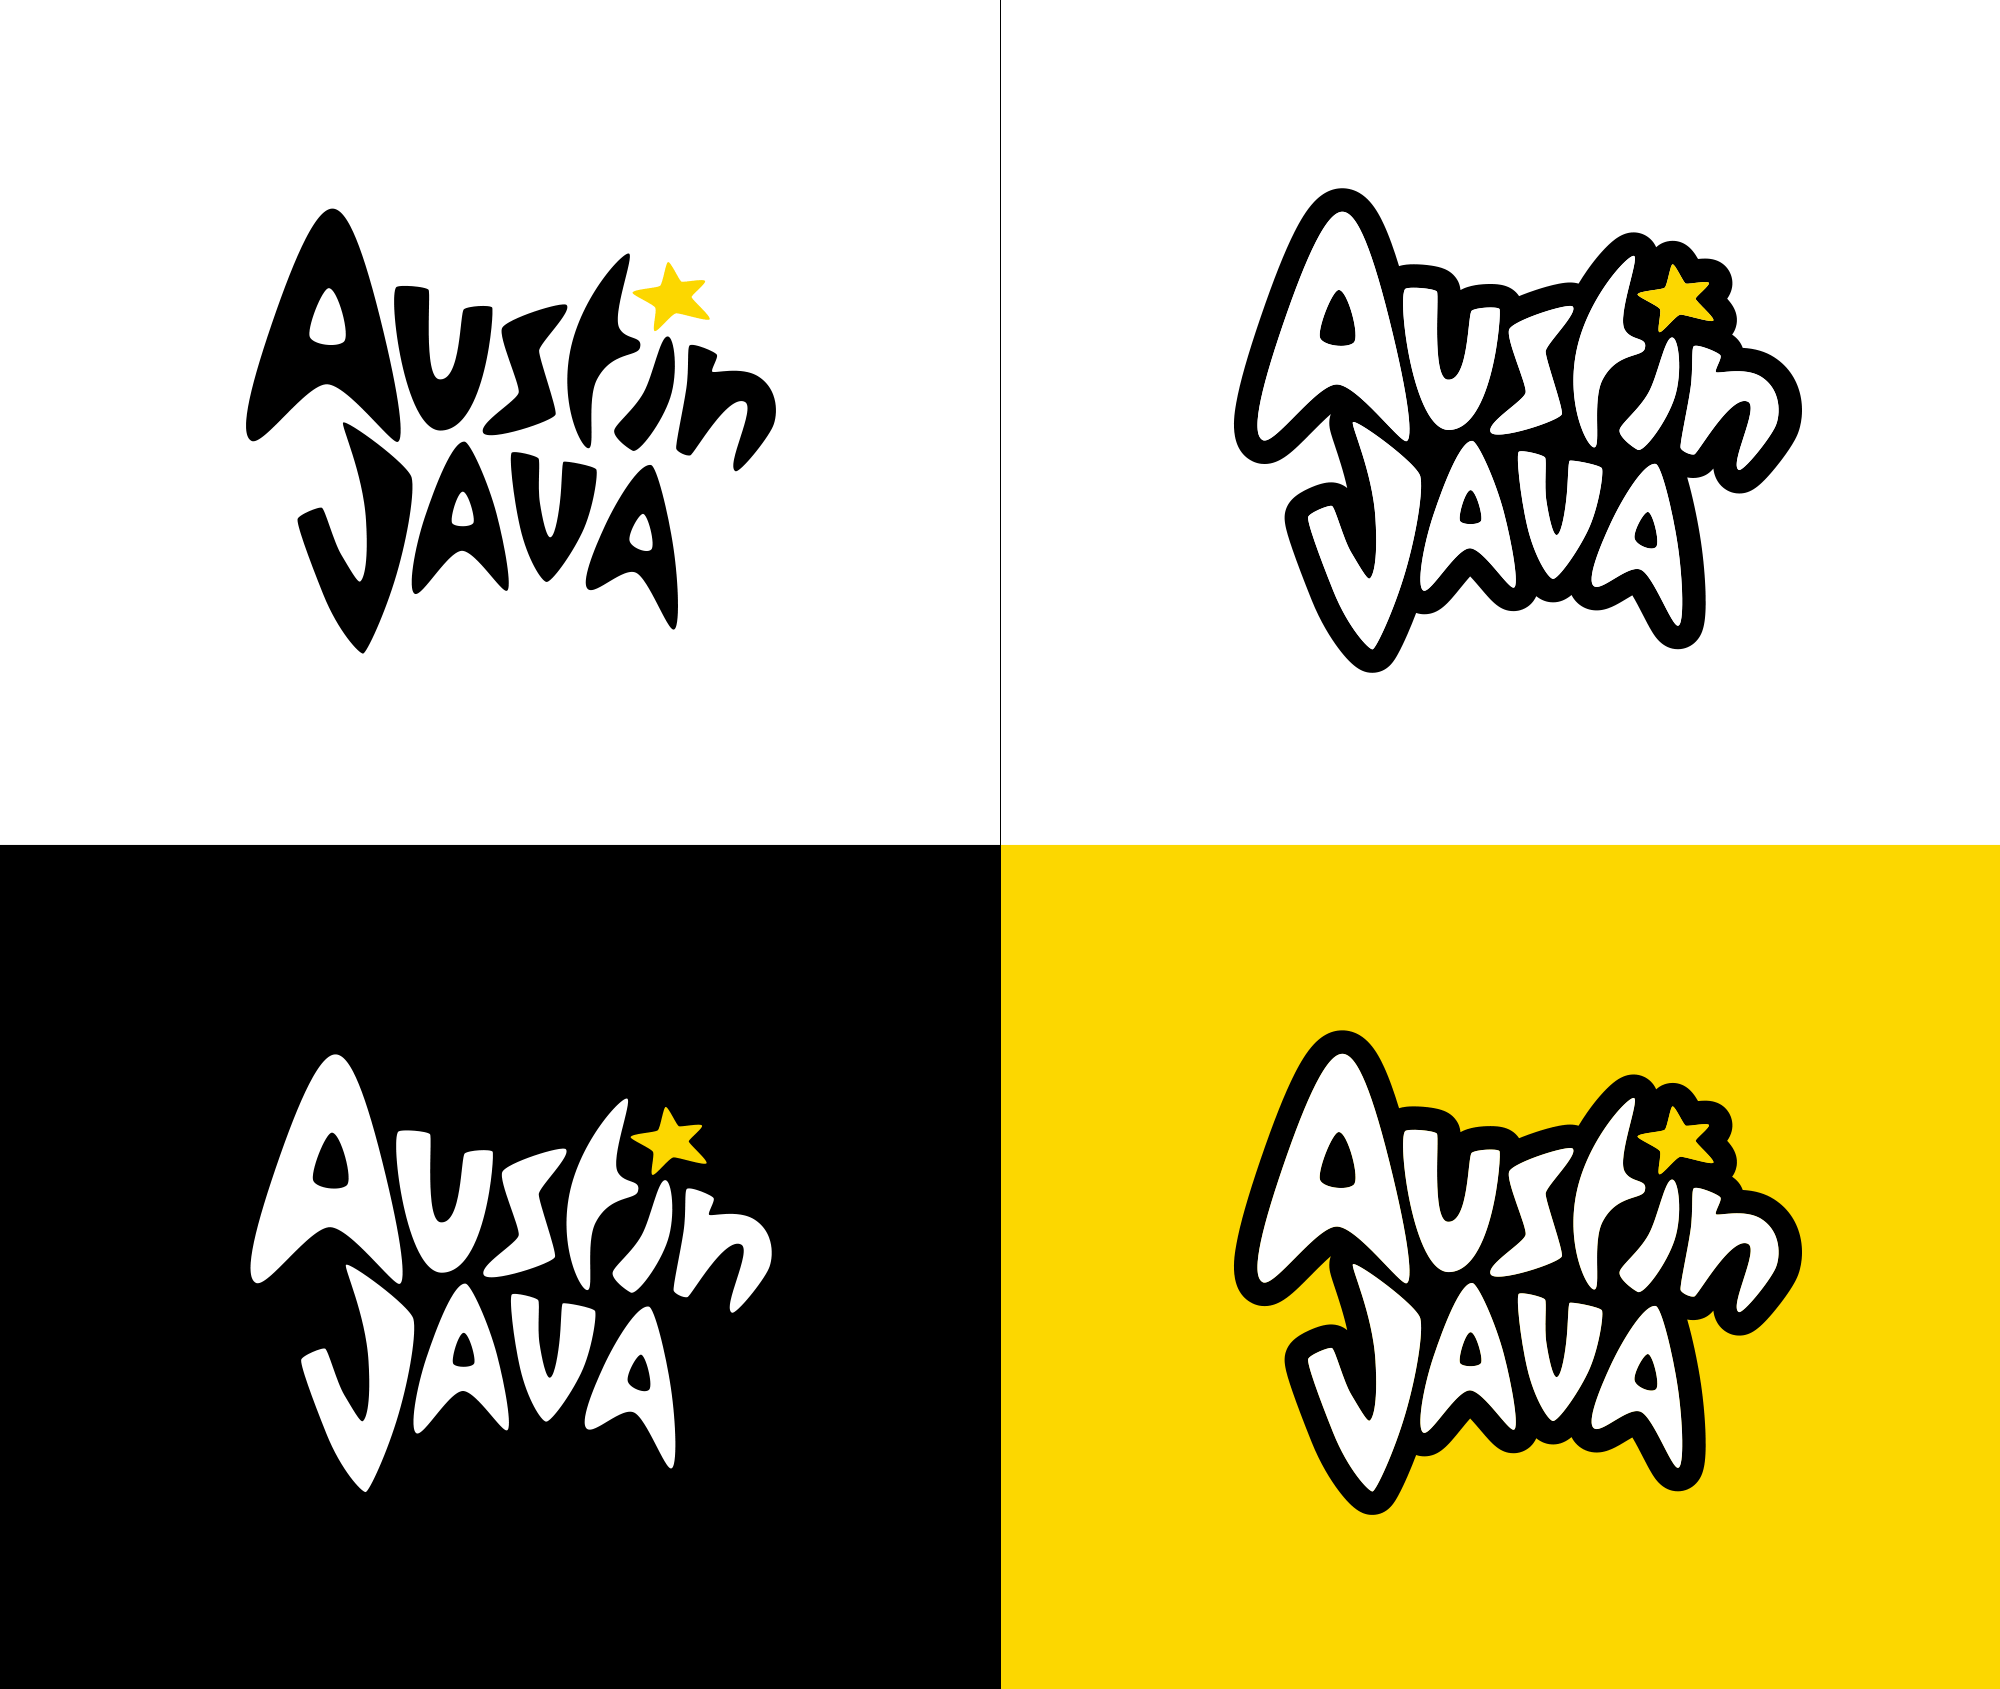 New Logo and Identity for Austin Java by Tilted Chair